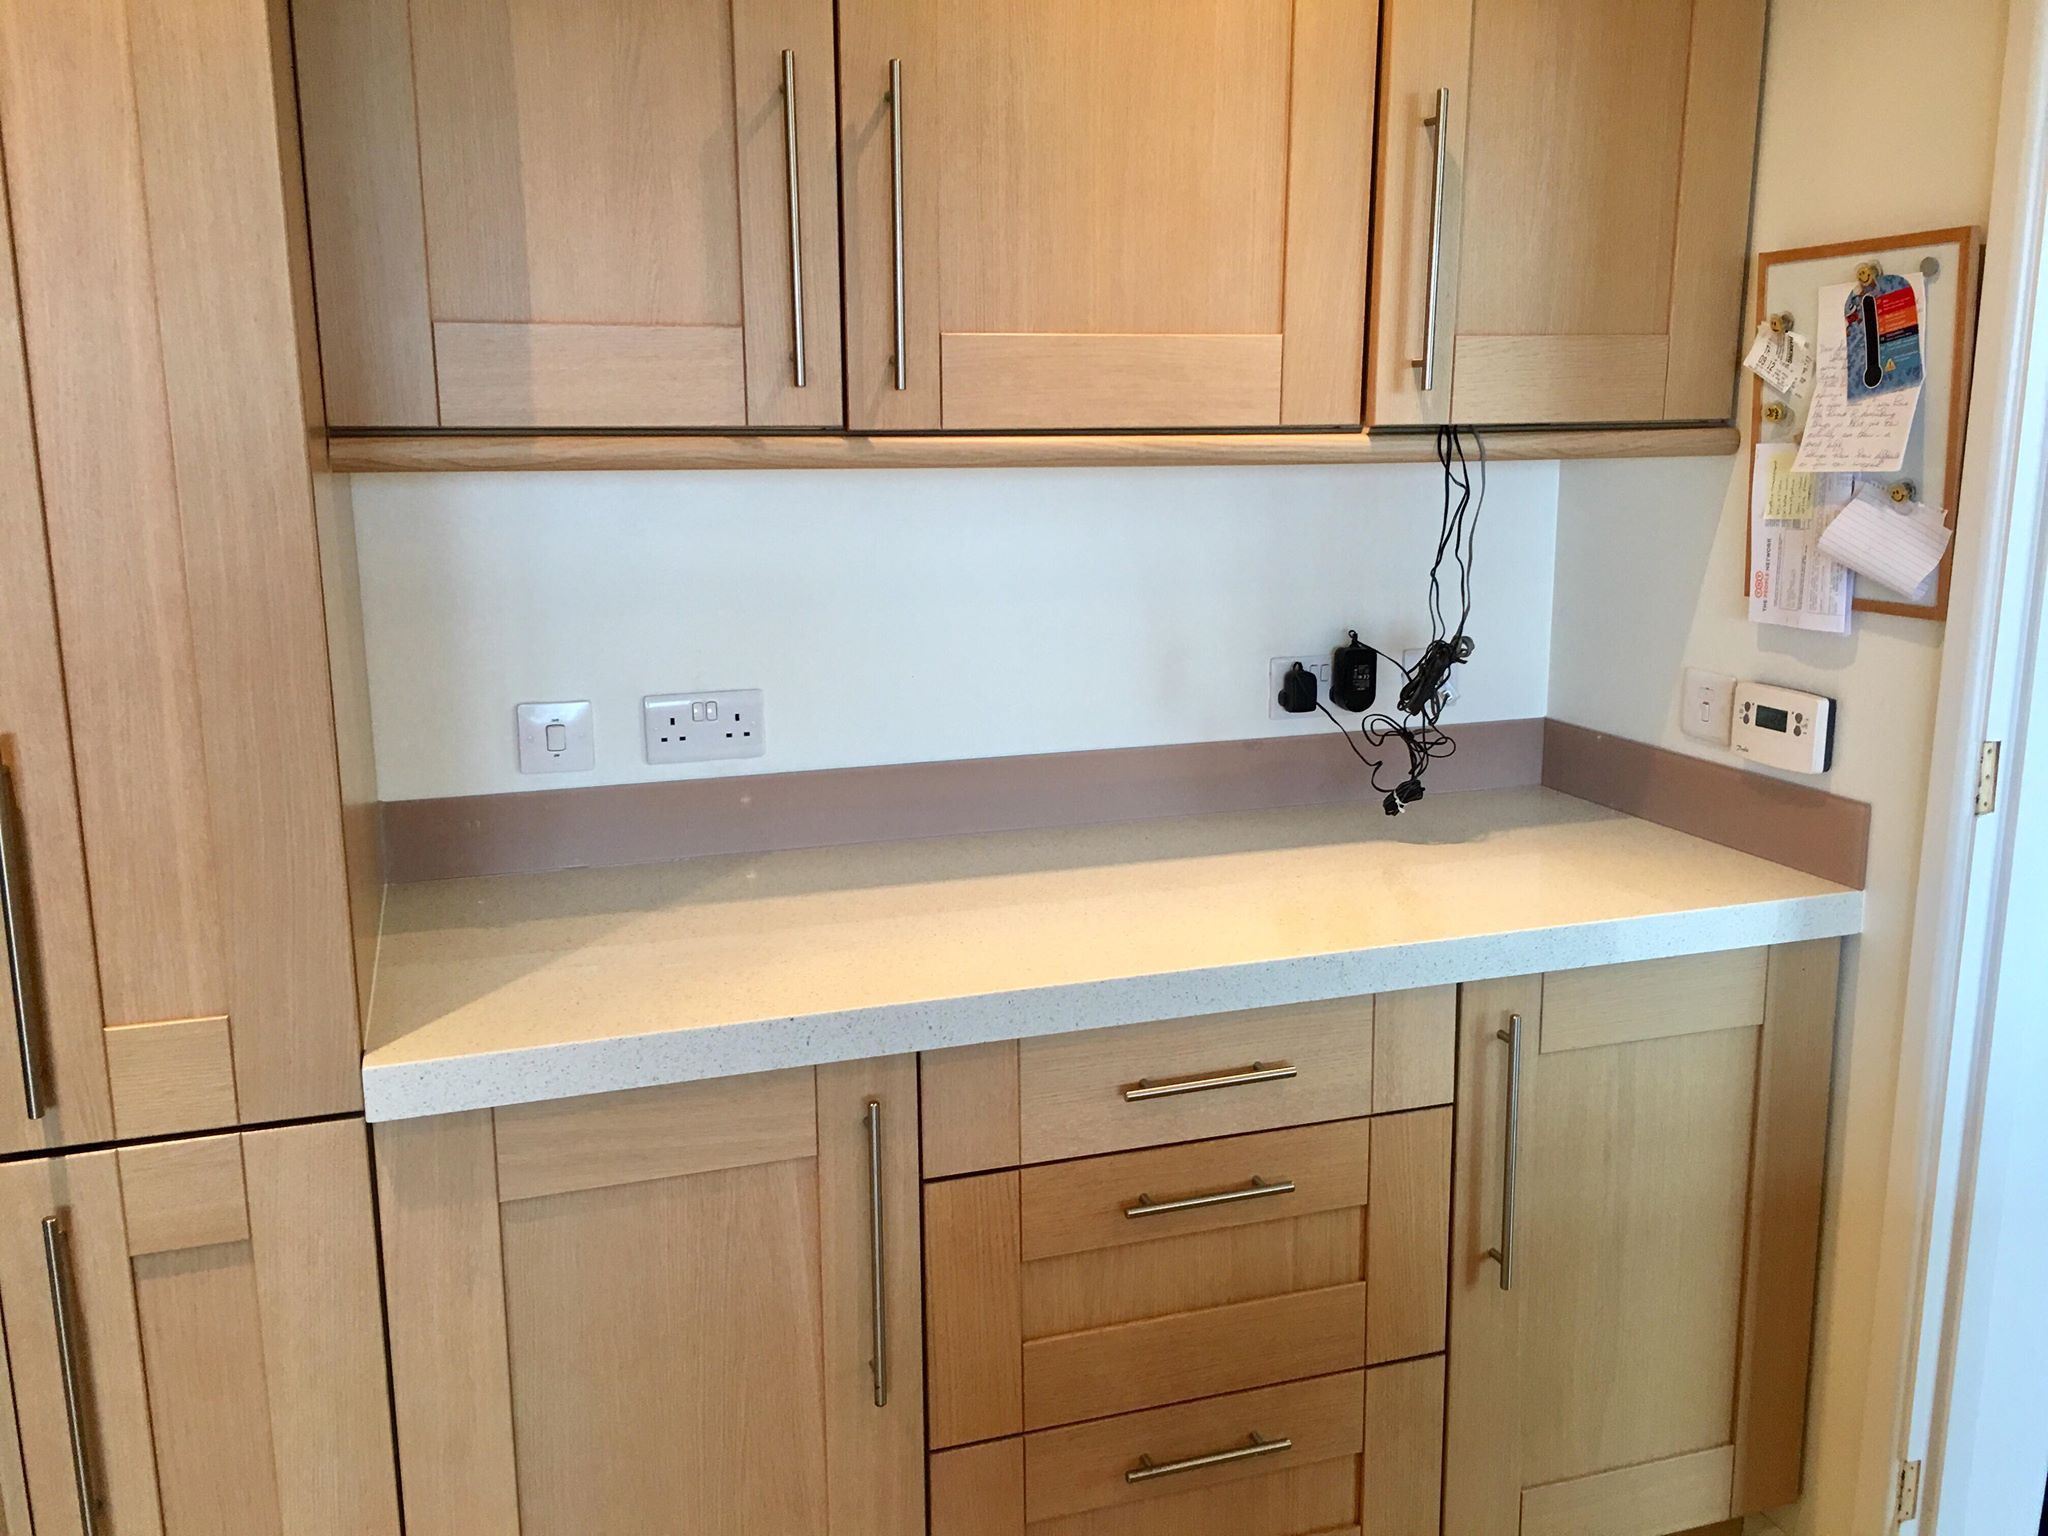 Splashback upstand